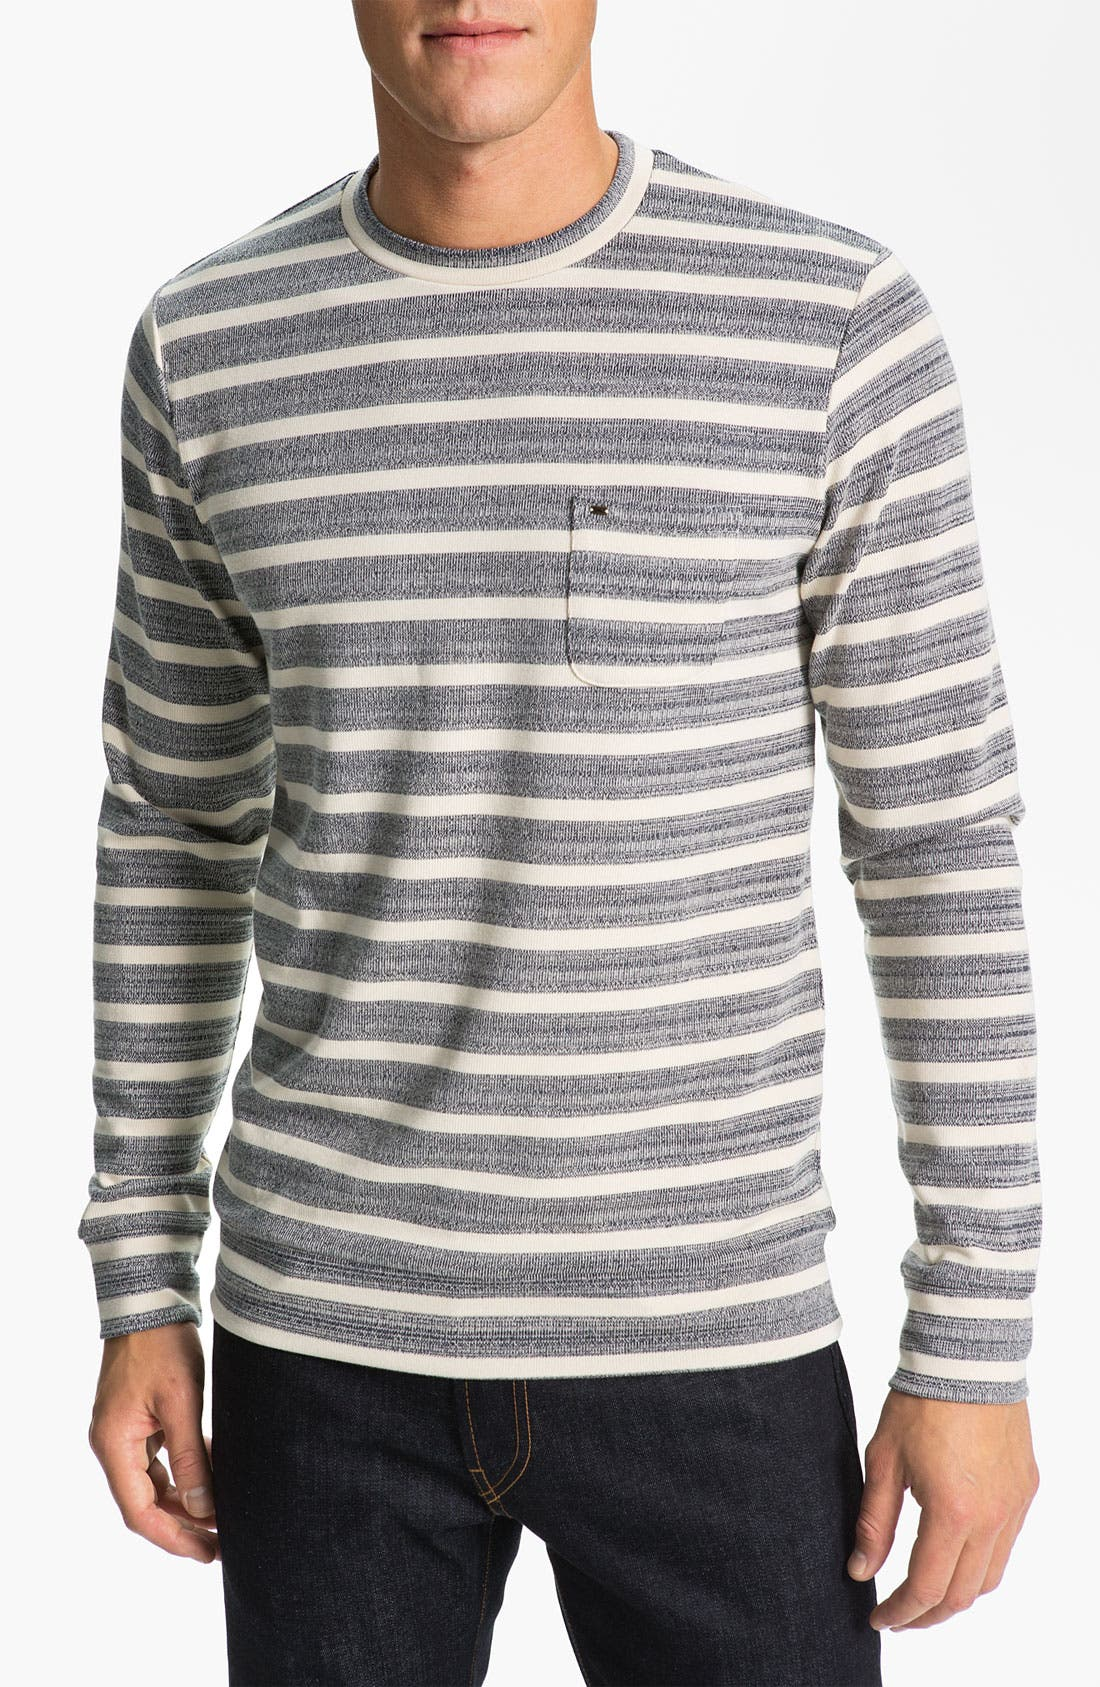 Alternate Image 1 Selected - Obey 'Cabe' Stripe Crewneck Sweater